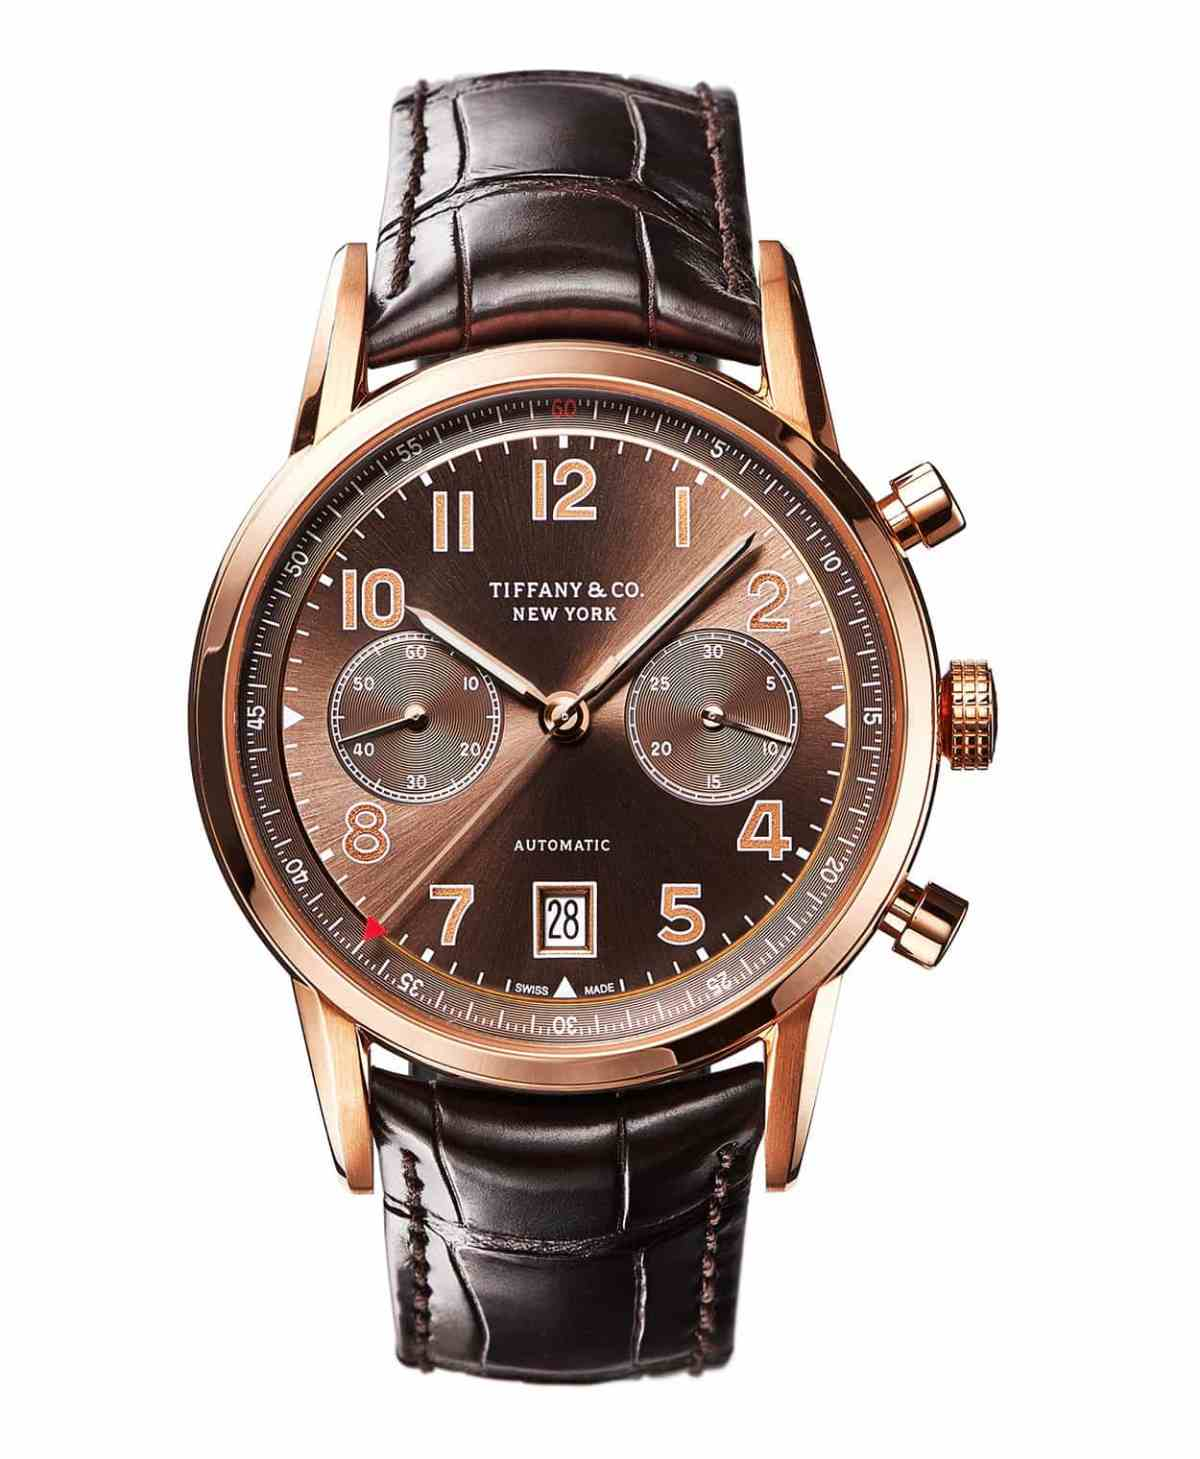 Tiffany CT60 Chronograph in rose gold